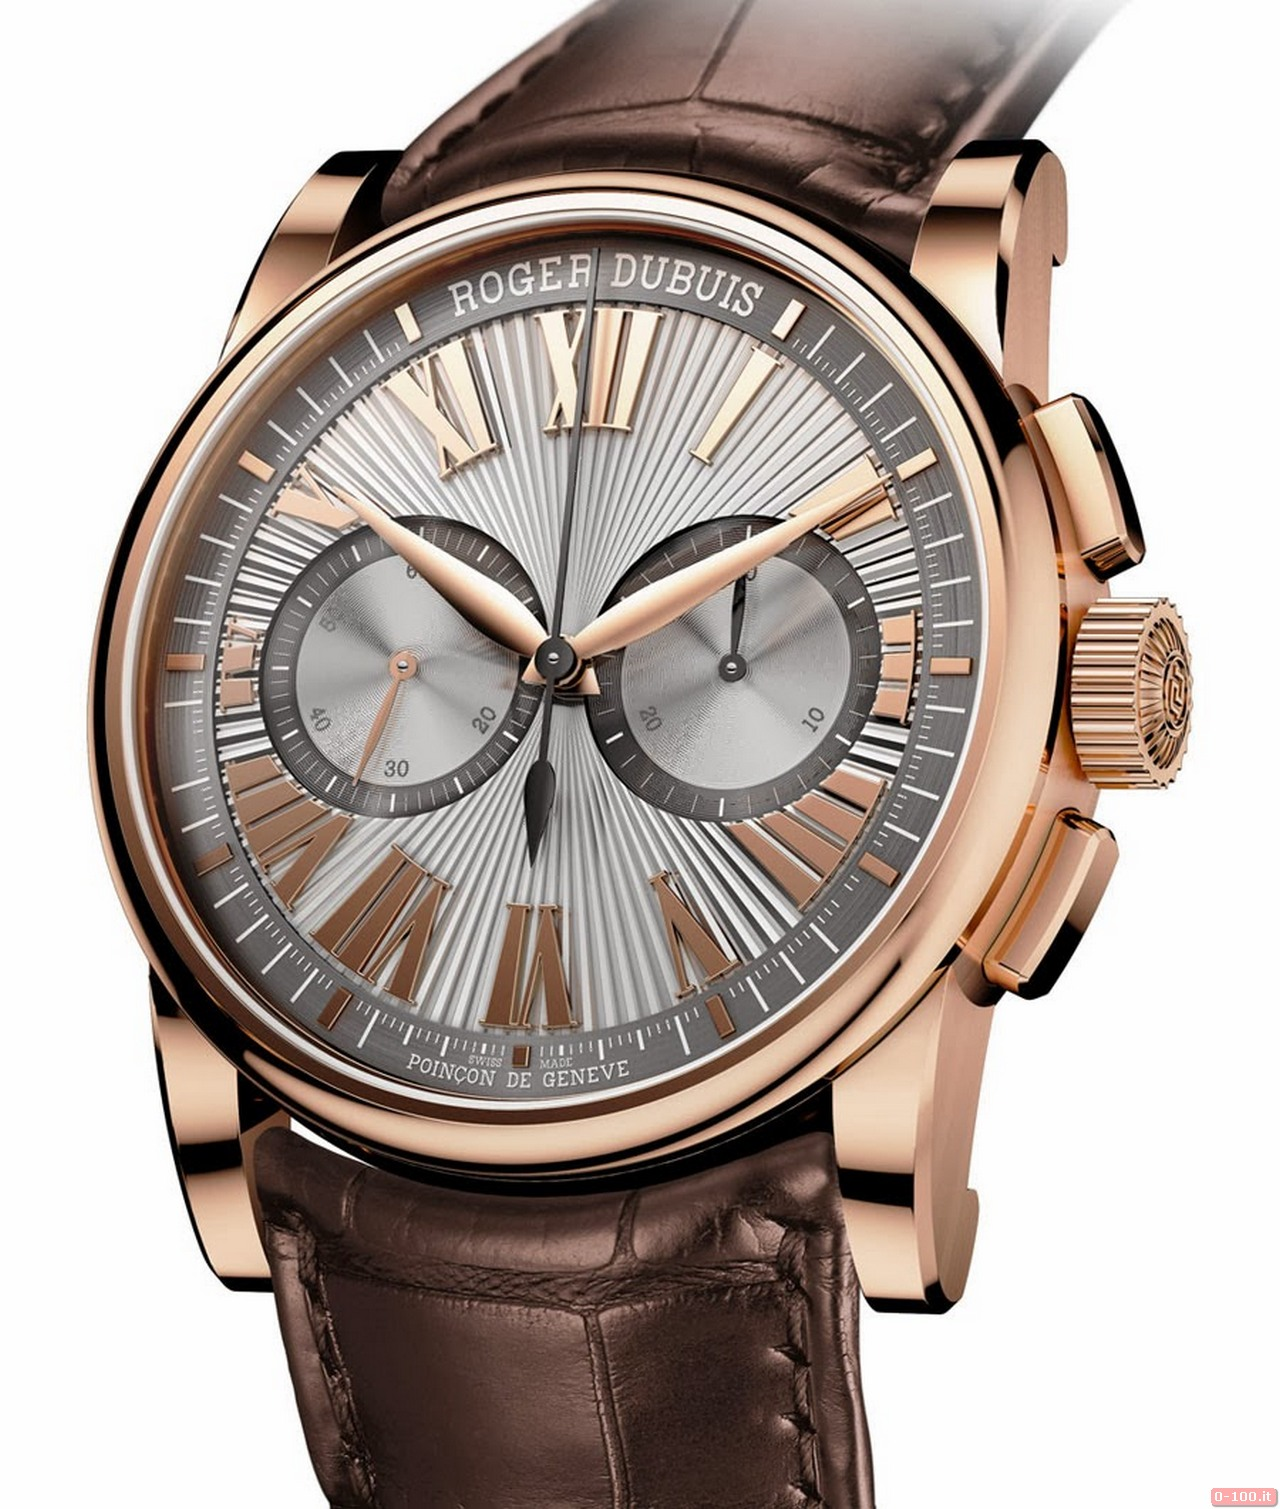 anteprima-sihh-2014-roger-dubuis-collezione-hommage-0-100_4